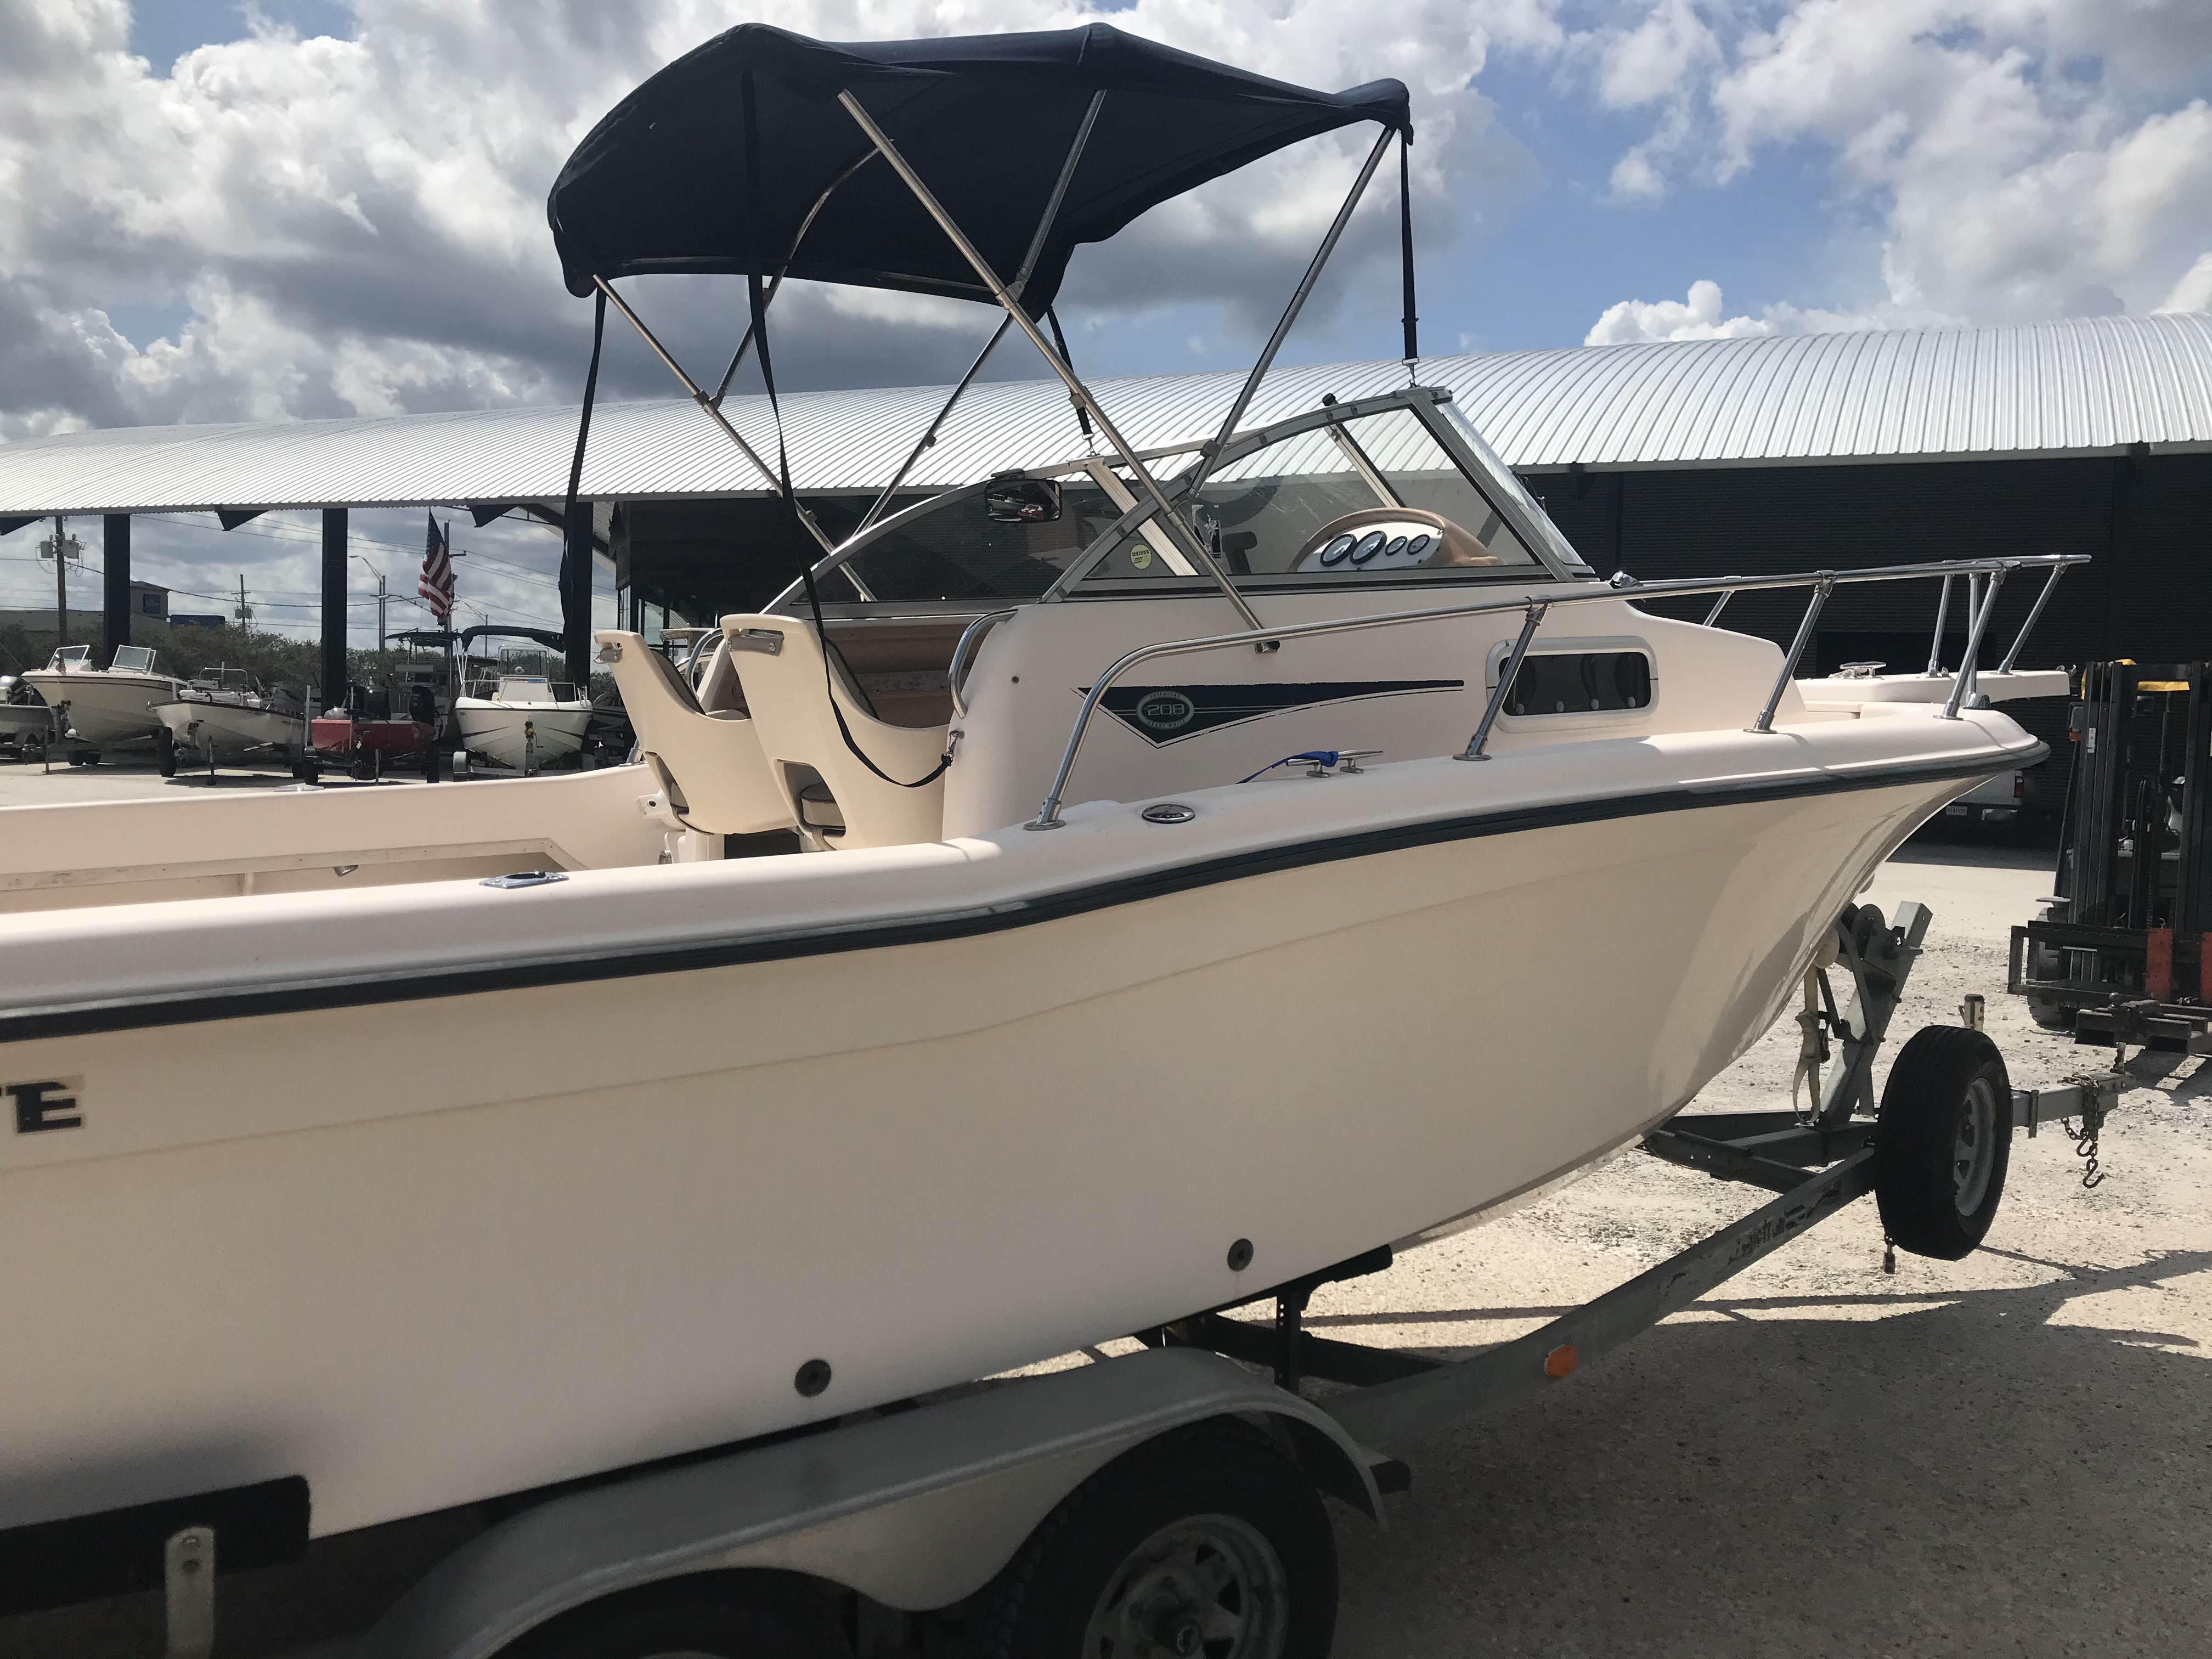 1998 Grady-White boat for sale, model of the boat is Adventure 208 & Image # 10 of 15